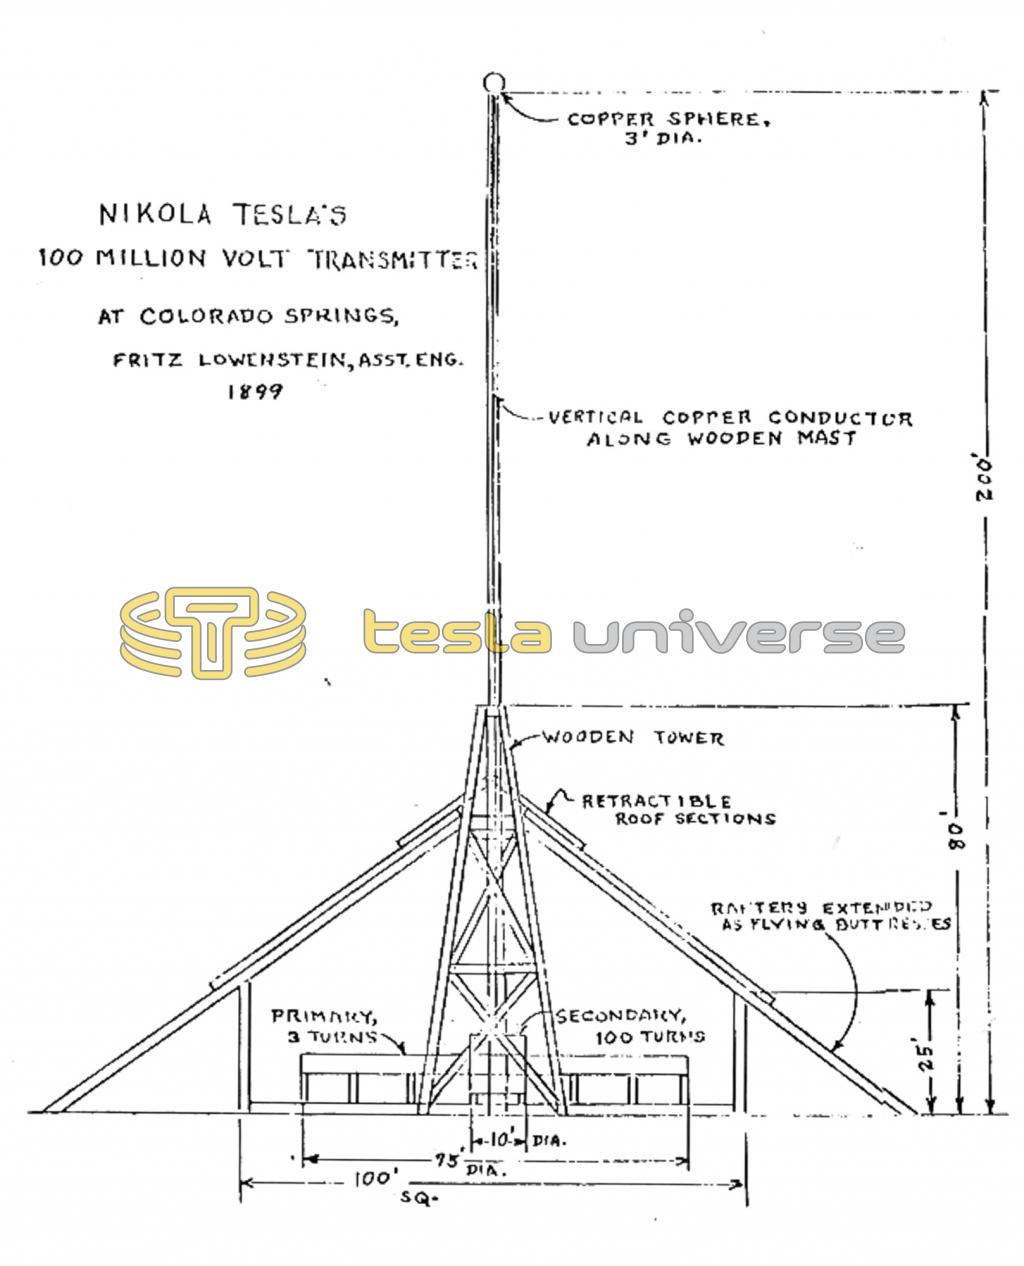 Overview diagram of Tesla's Colorado Springs Experimental Station